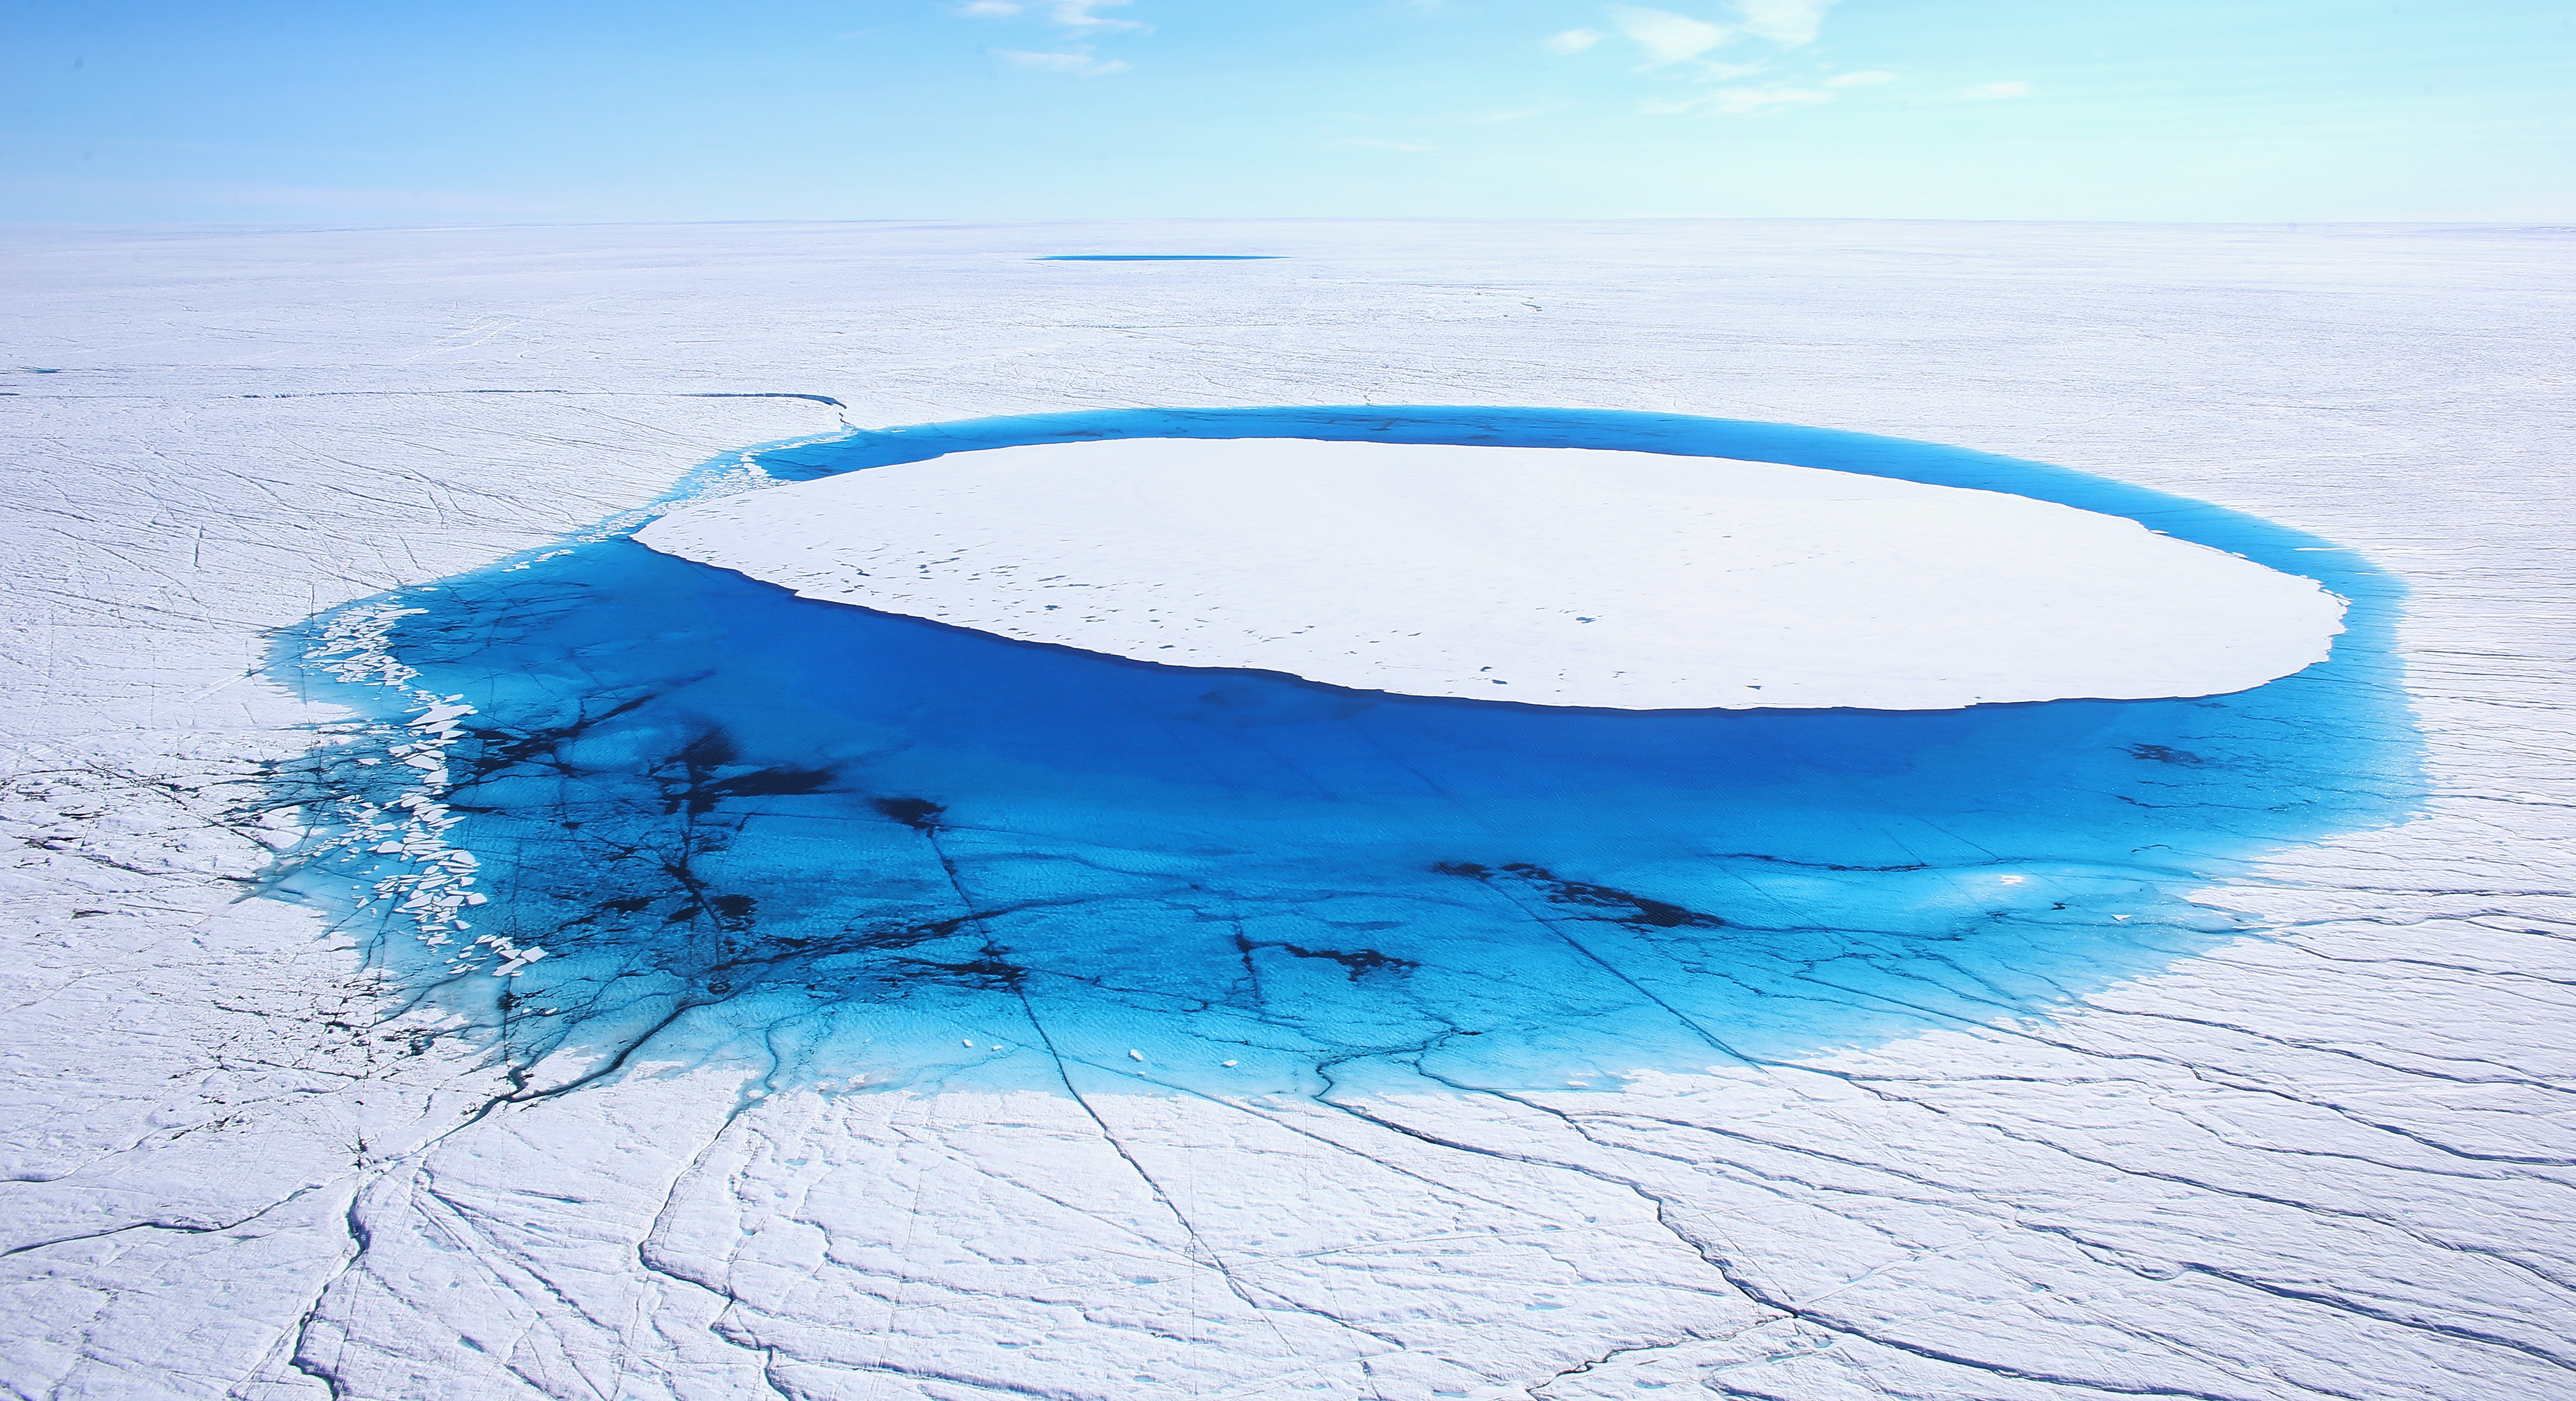 Water is seen on part of the glacial ice sheet that covers about 80 percent of Greenland  on July 17, 2013 on the Glacial Ice Sheet, Greenland.